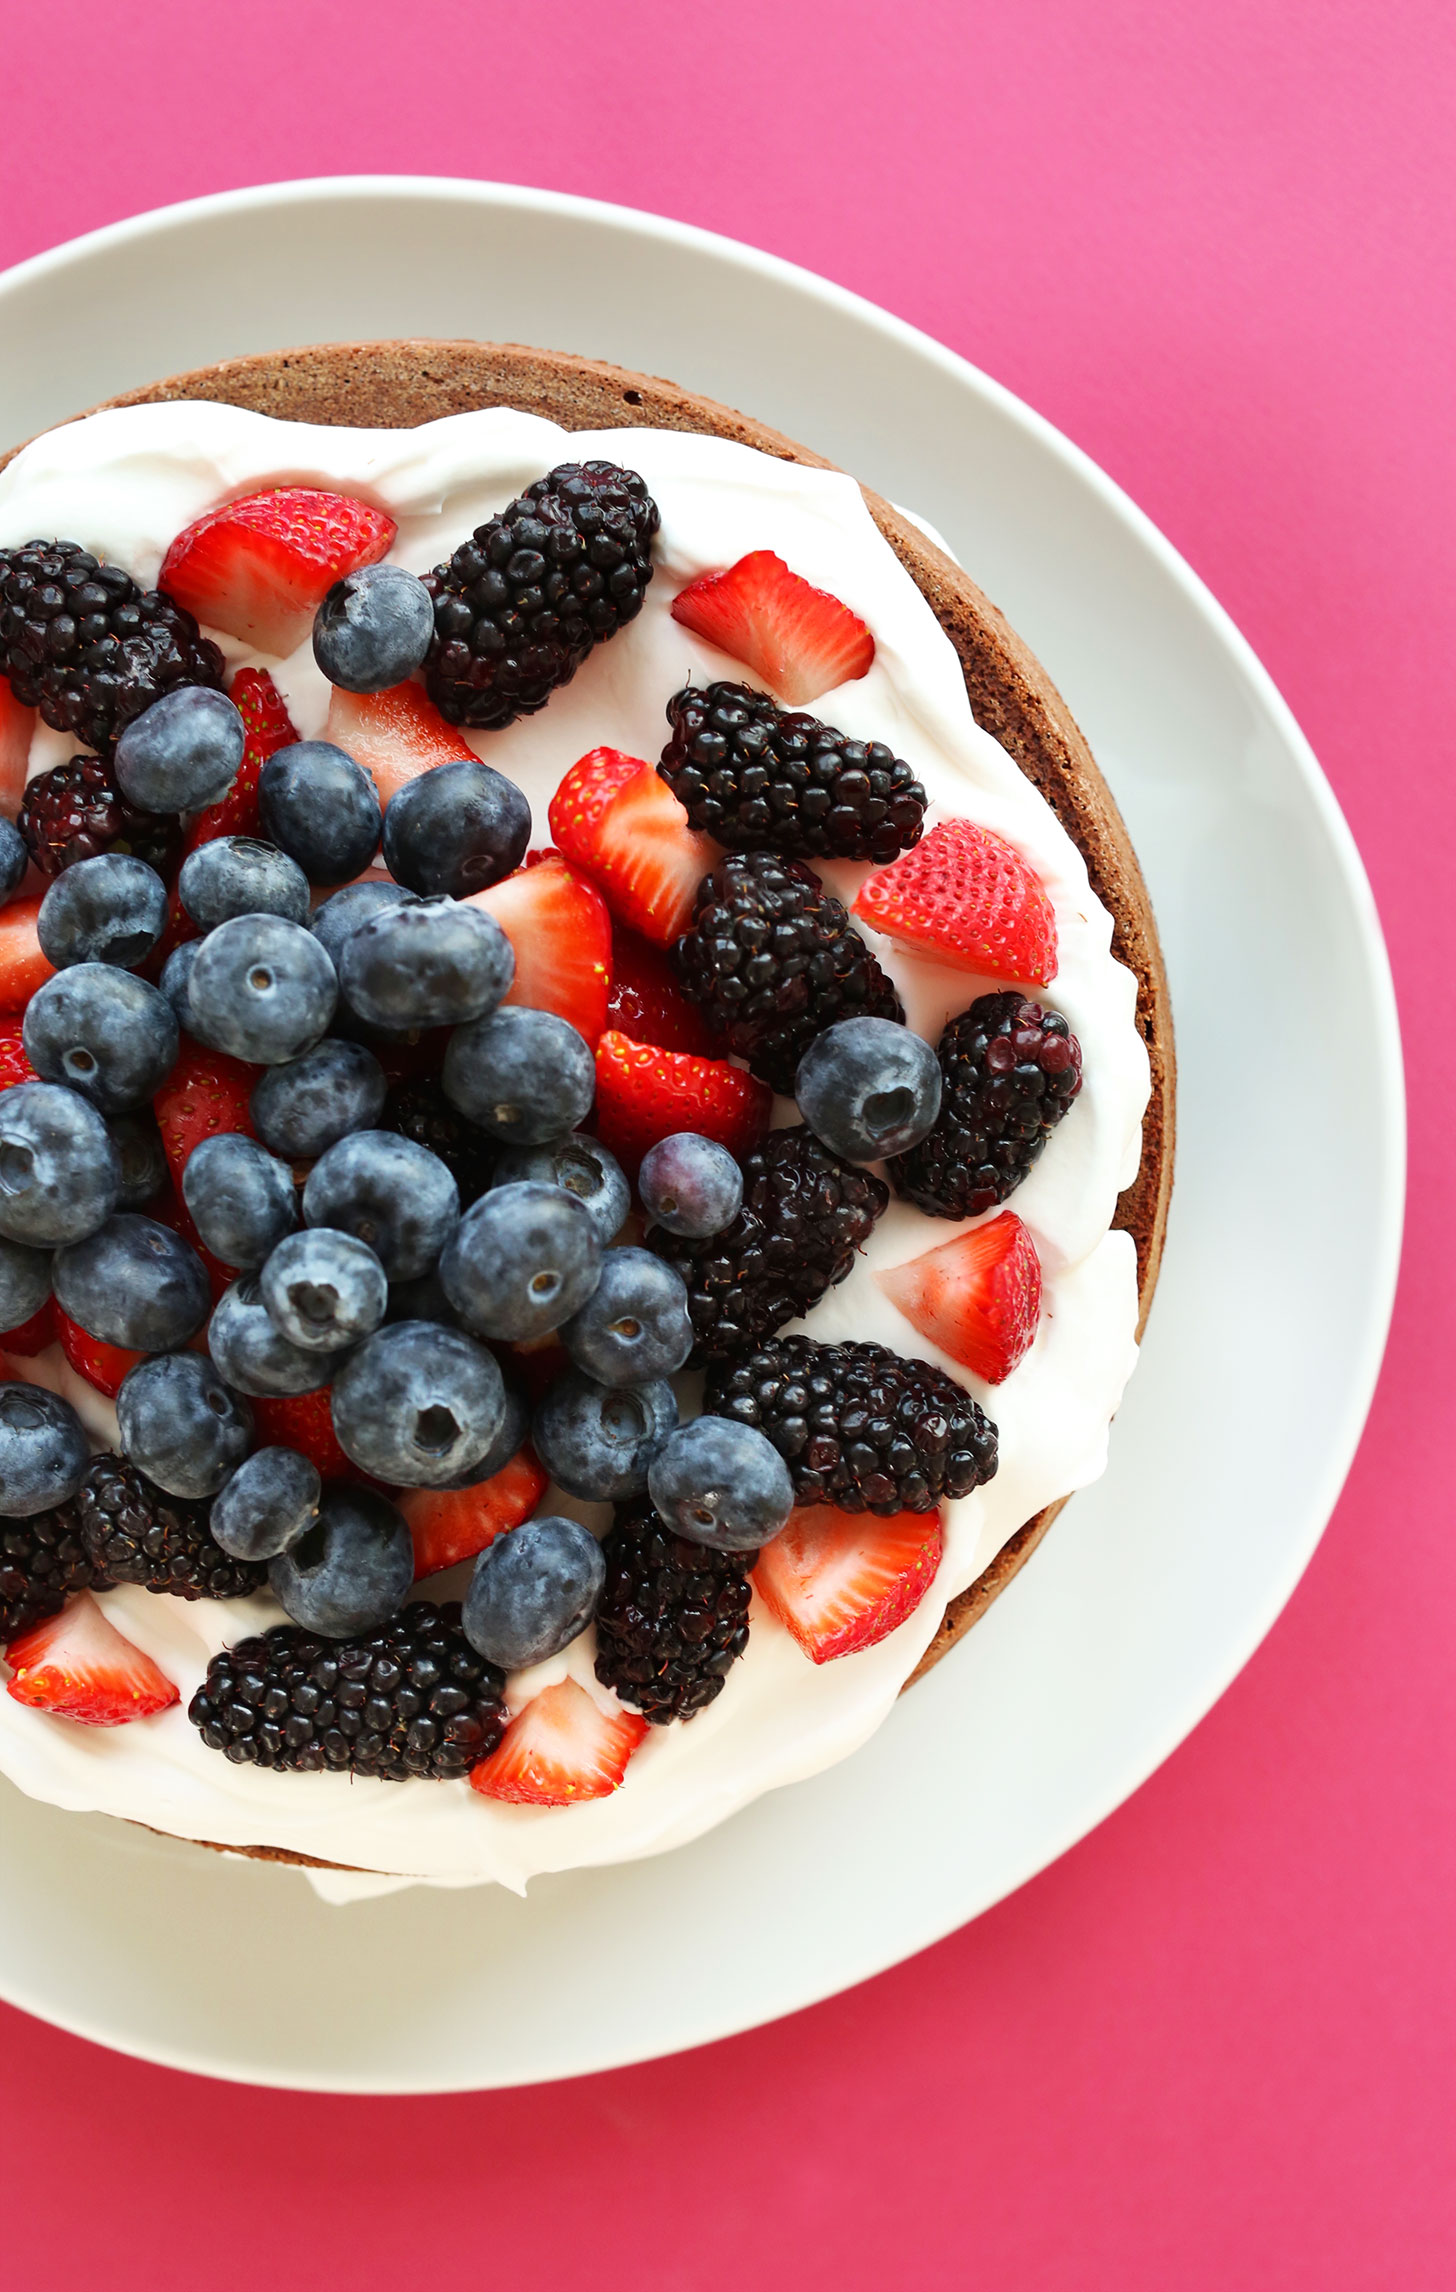 'AMAZING 1-Bowl Chocolate Cake with Coconut Whipped Cream with Berries! The perfect summer birthday cake | #vegan #glutenfree #cake #glutenfree #chocolate #dessert #minimalistbaker' from the web at 'https://minimalistbaker.com/wp-content/uploads/2015/07/AMAZING-1-Bowl-Chocolate-Cake-with-Coconut-Whipped-Cream-with-Berries-The-perfect-summer-birthday-cake-vegan-glutenfree-cake-glutenfree-chocolate-dessert-minimalistbaker.jpg'